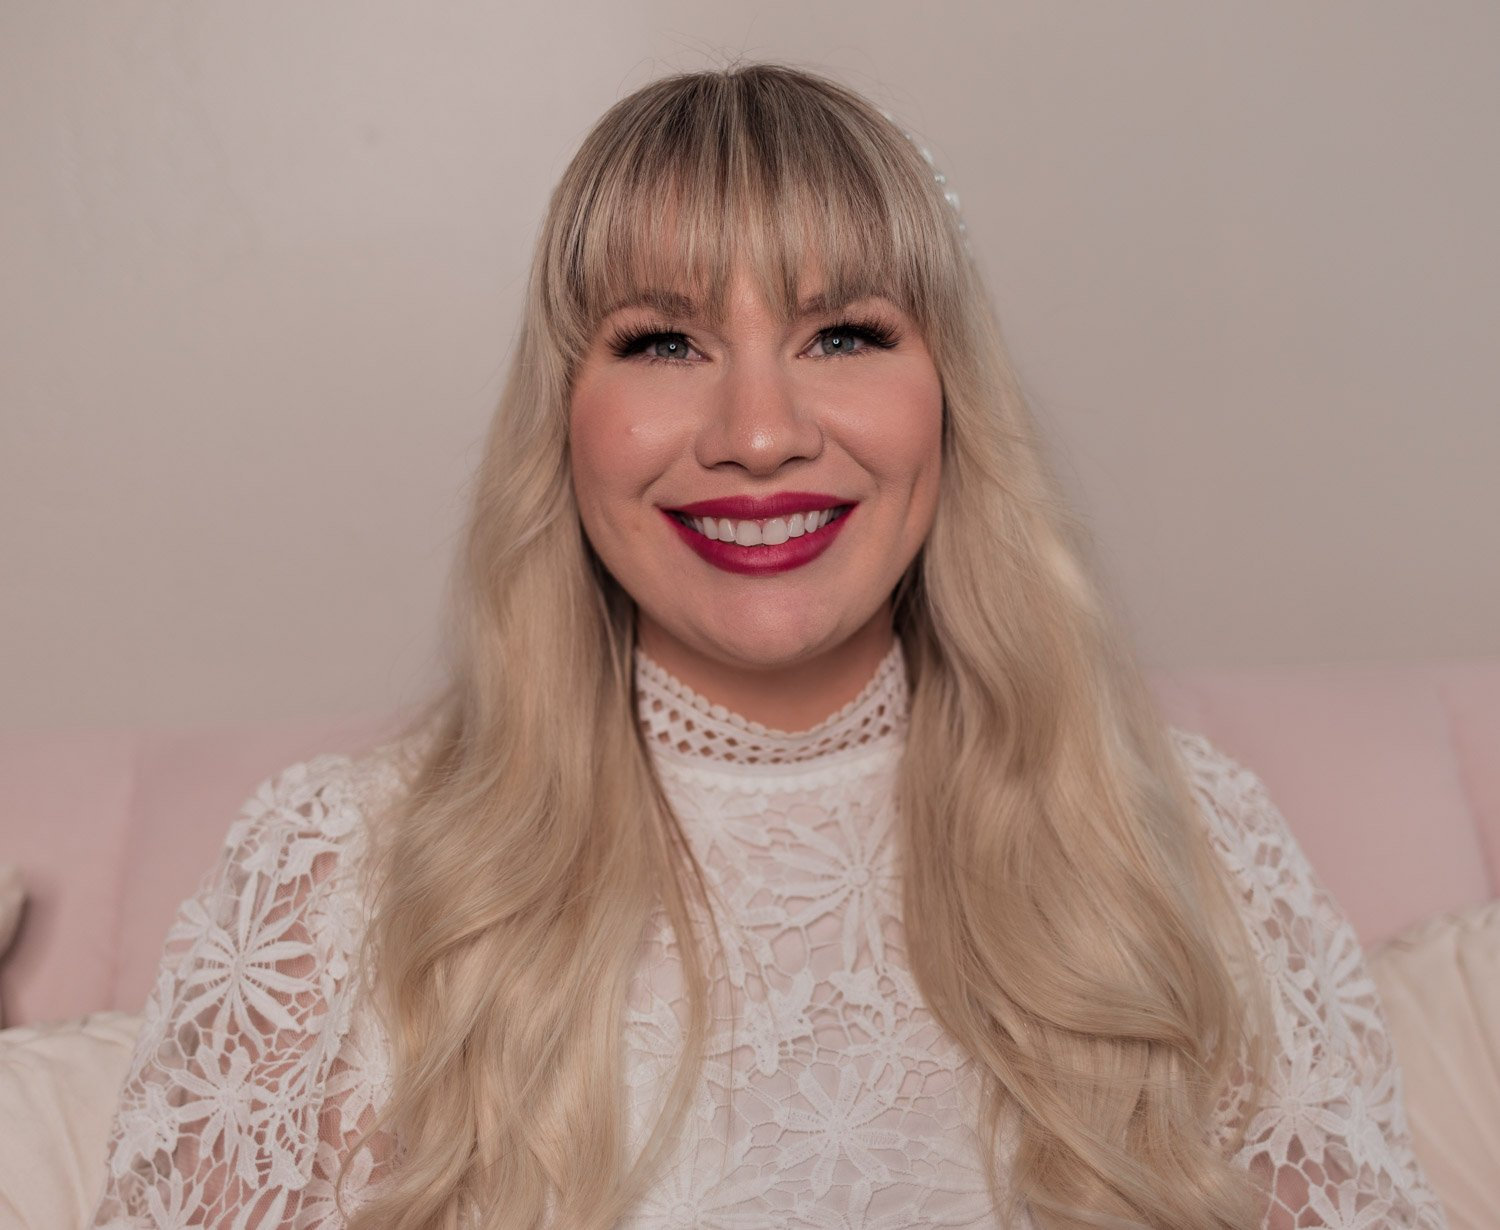 Feminine fashion and beauty blogger Elizabeth Hugen of Lizzie in Lace shares the Charlotte Tilbury Look of Love Collection Review and lipstick swatches including her First Dance lipstick review - the perfect wedding lipstick!